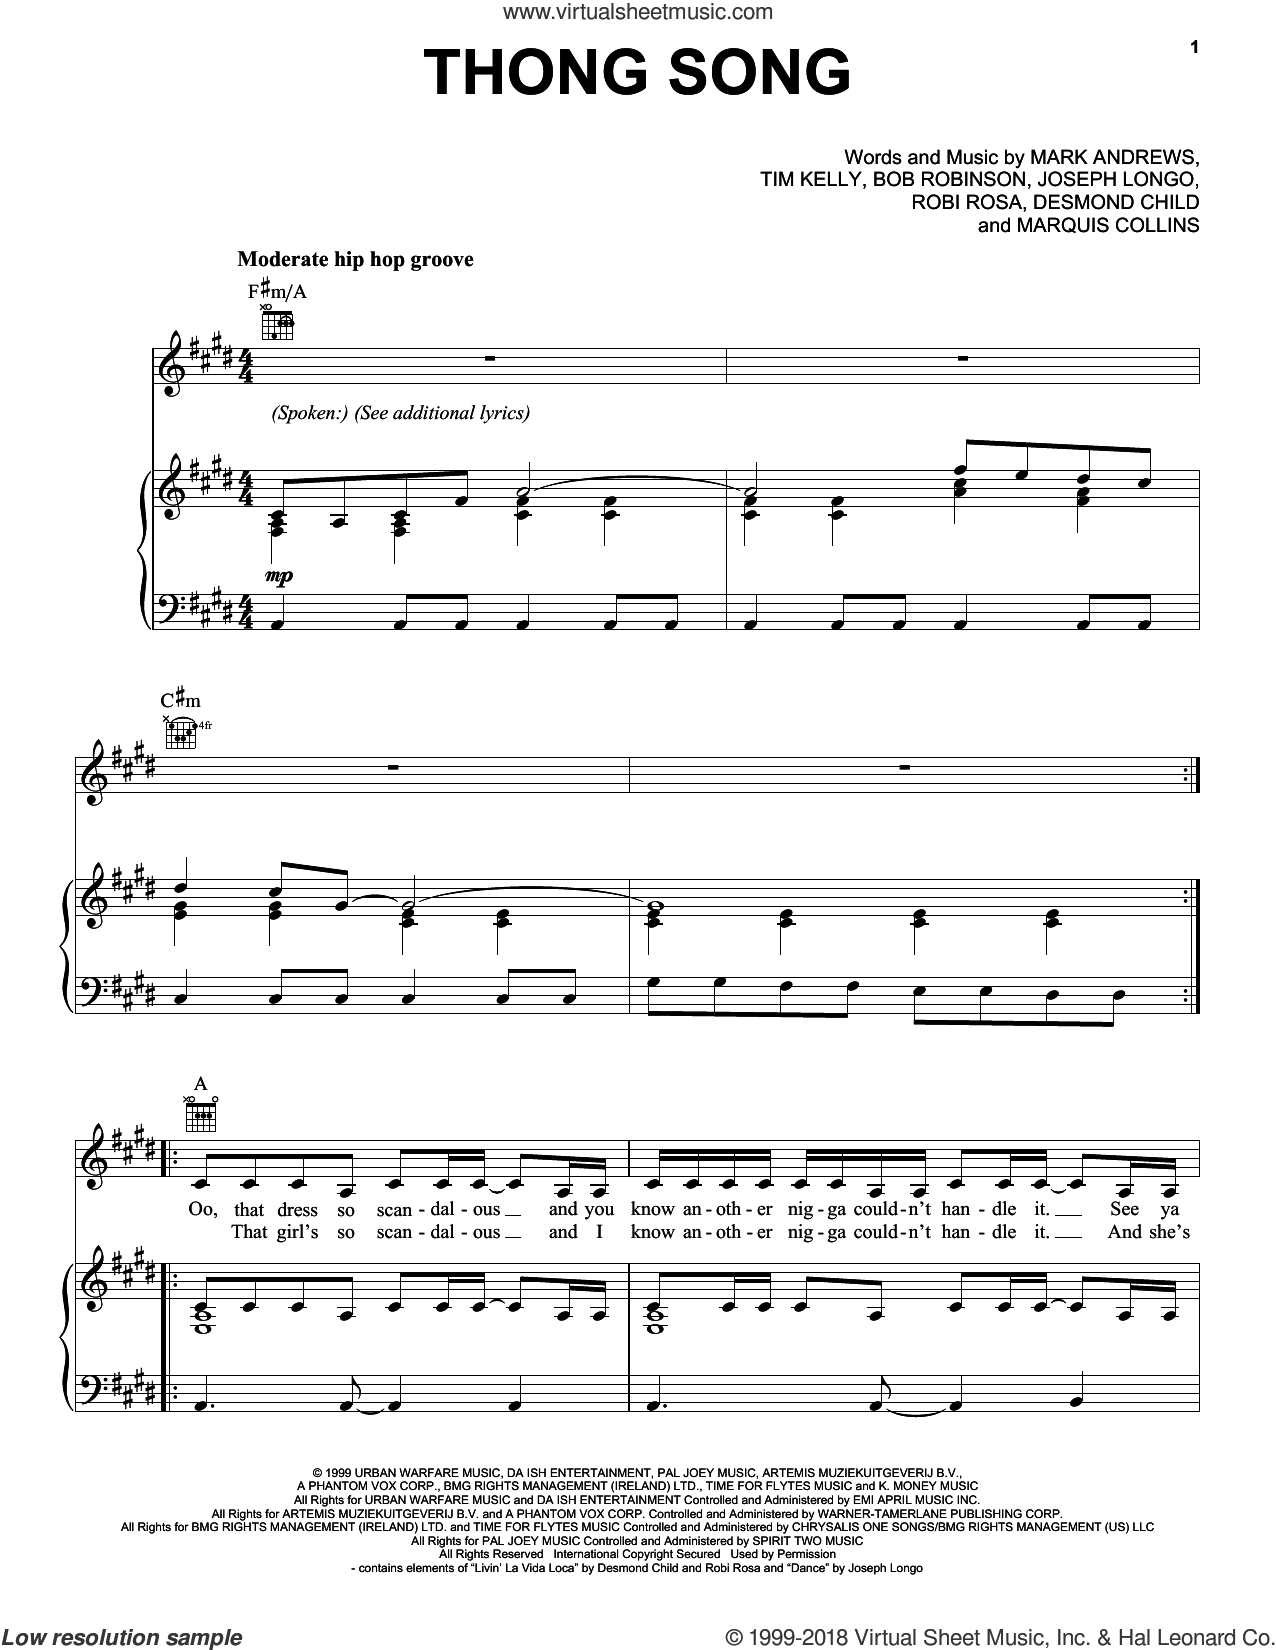 Thong Song sheet music for voice, piano or guitar by Sisqo, Bob Robinson, Desmond Child, Joseph Longo, Mark Andrews, Marquis Collins, Roby Rosa and Tim Kelly, intermediate skill level